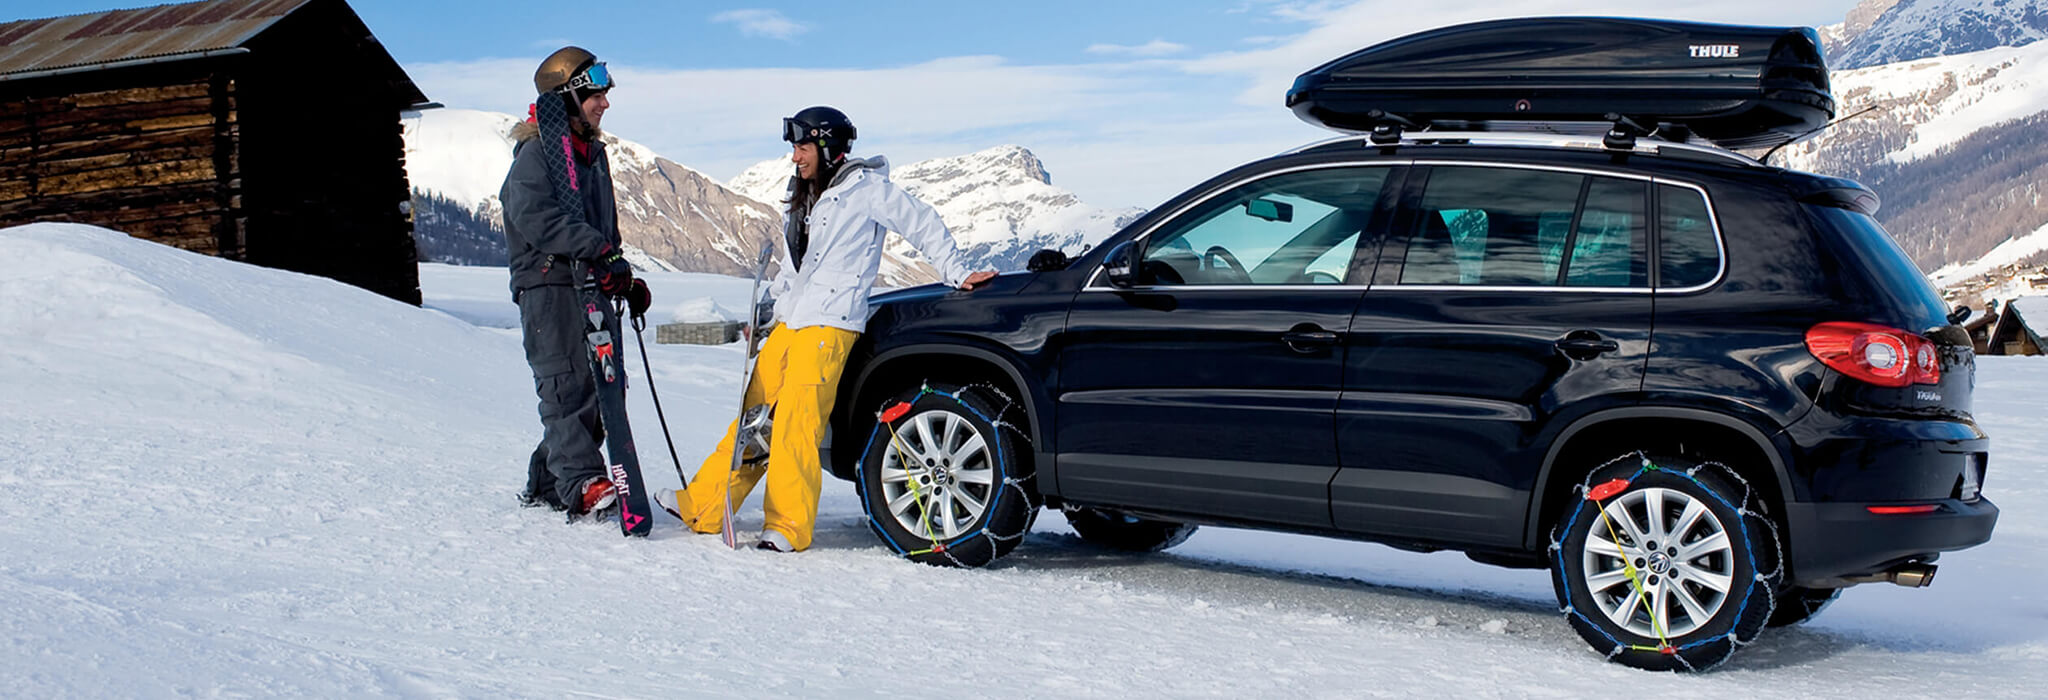 Thule Snow Chains